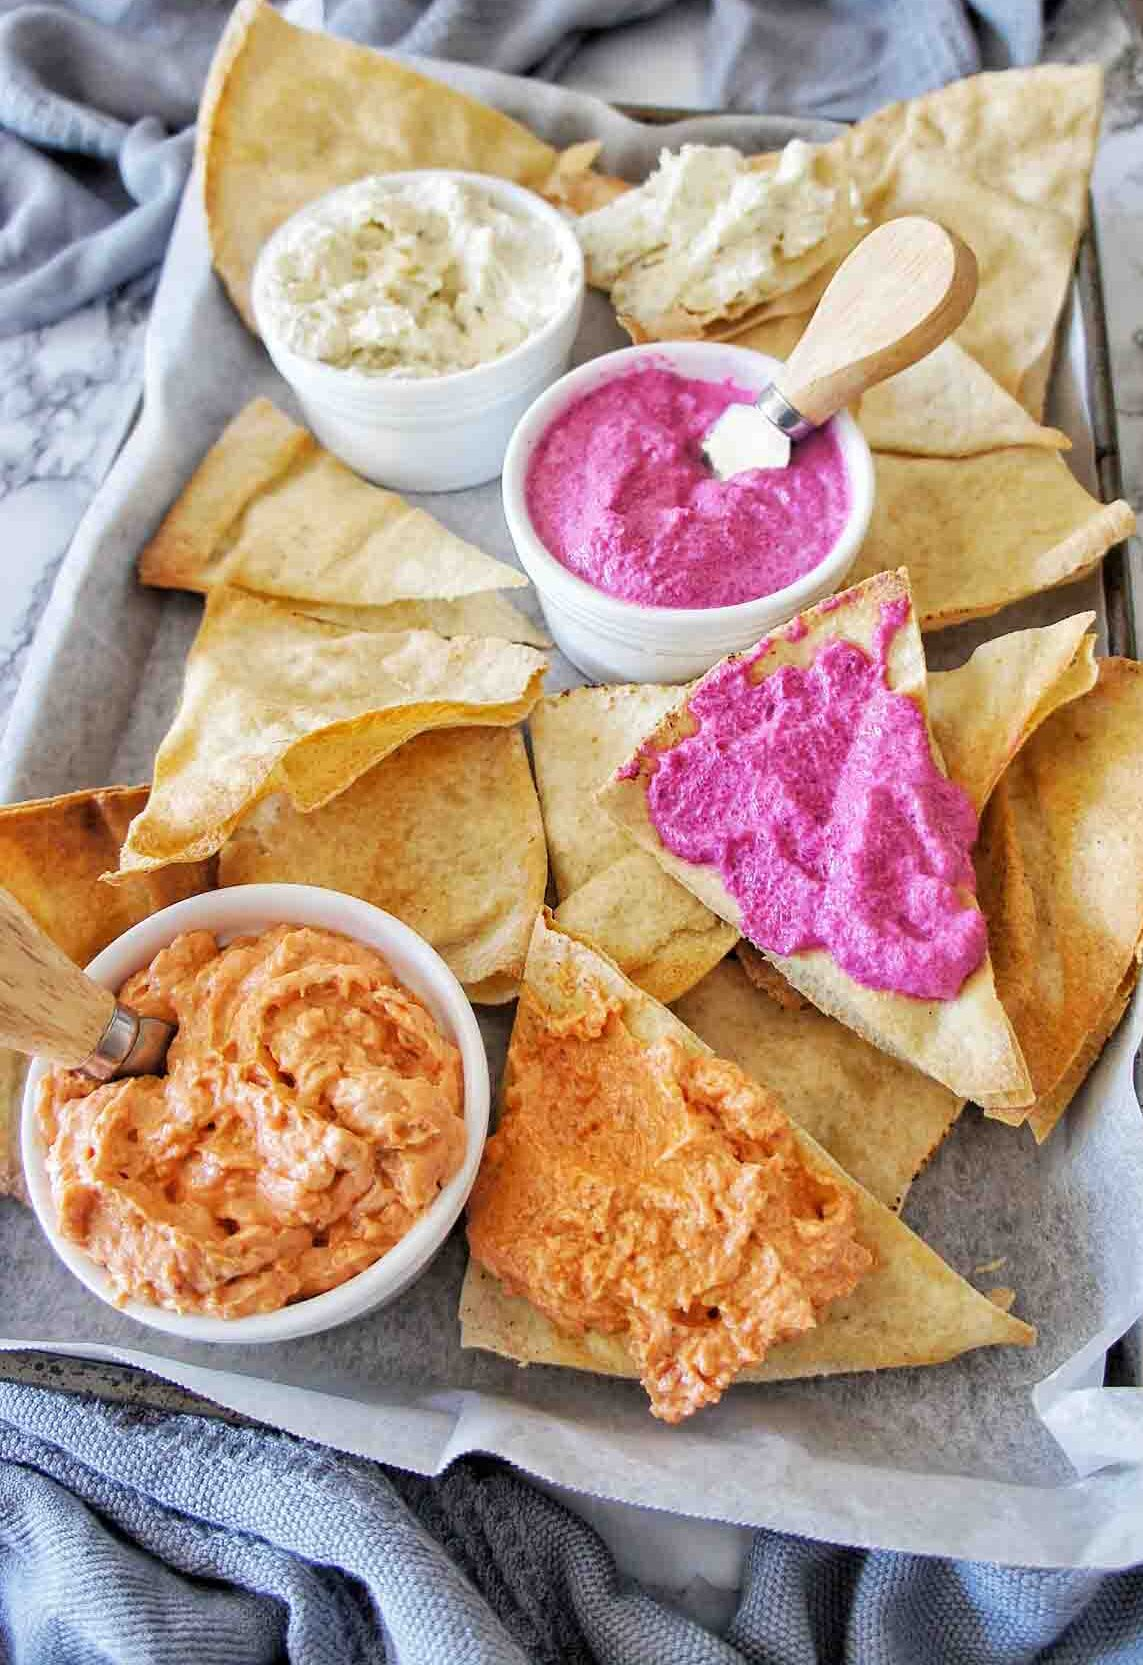 Chips and Dips on platter with serving knife